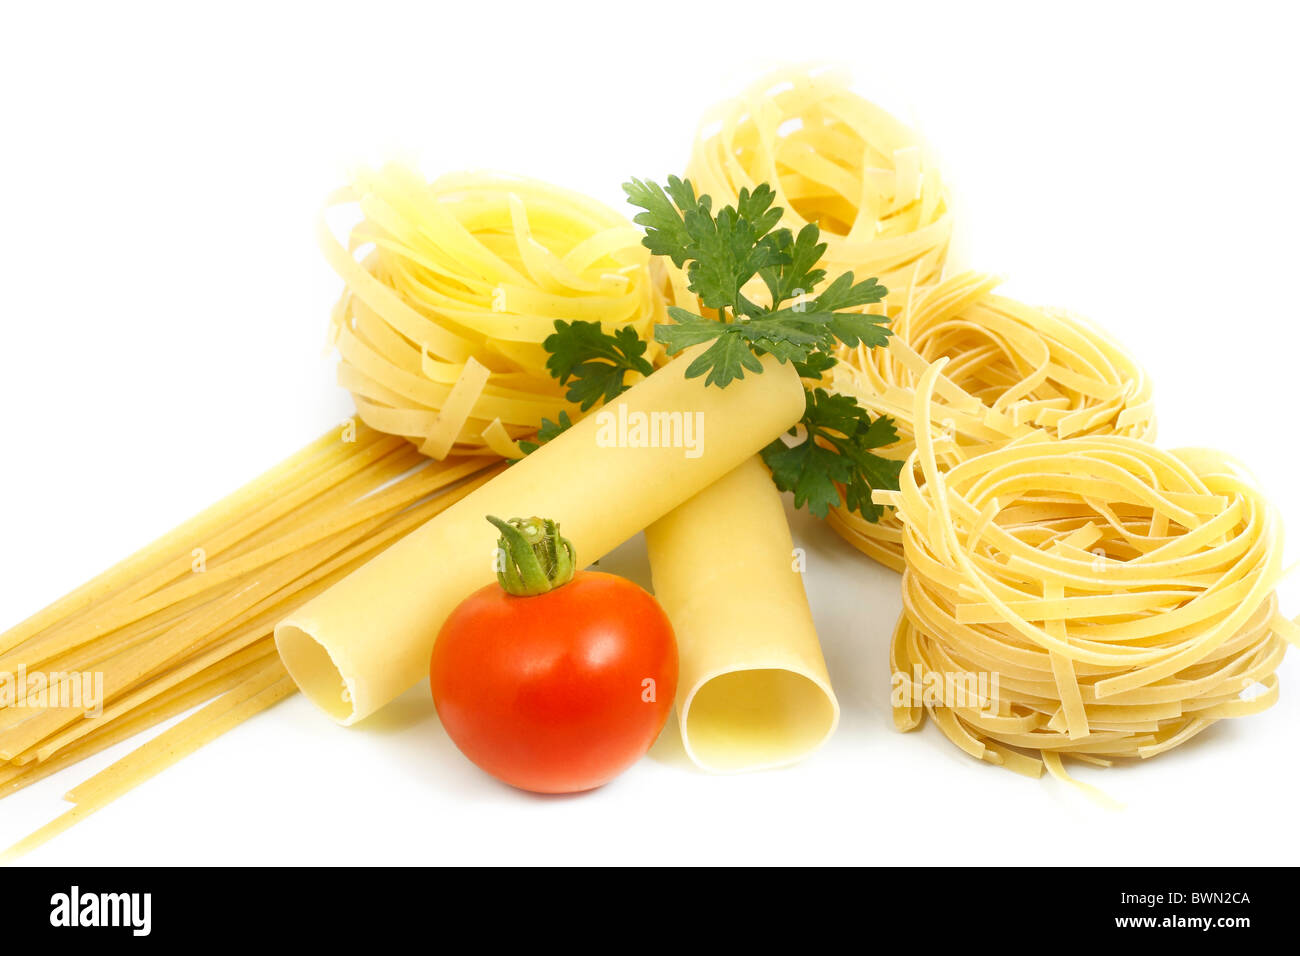 pasta with greens and tomato - Stock Image